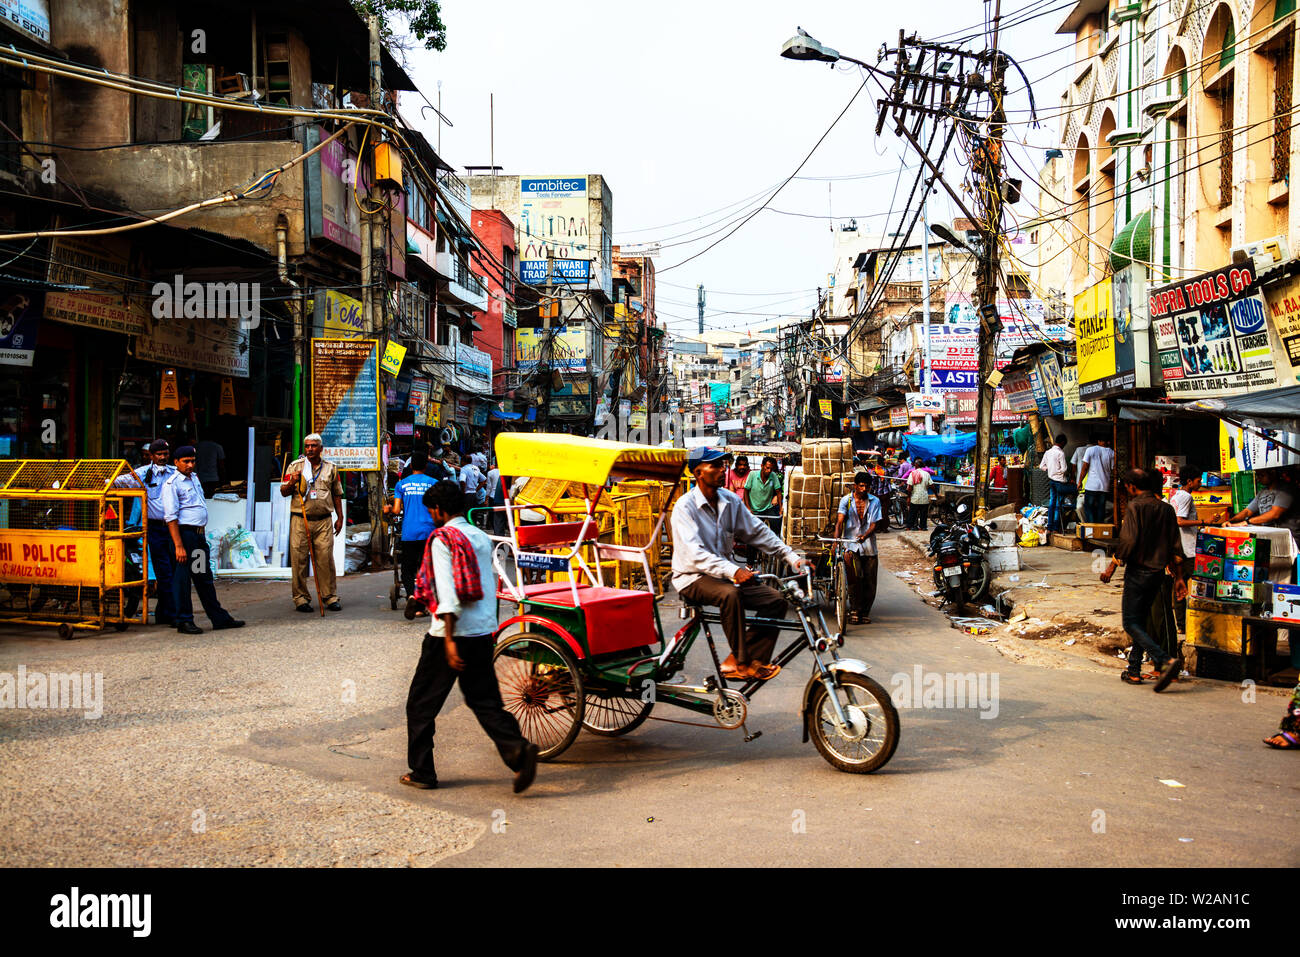 DELHI, INDIA - JULY 6, 2016: Busy car traffic in the city center of Delhi, India. Various shops, restaurants and cafes. Numerous signs, car traffic an - Stock Image